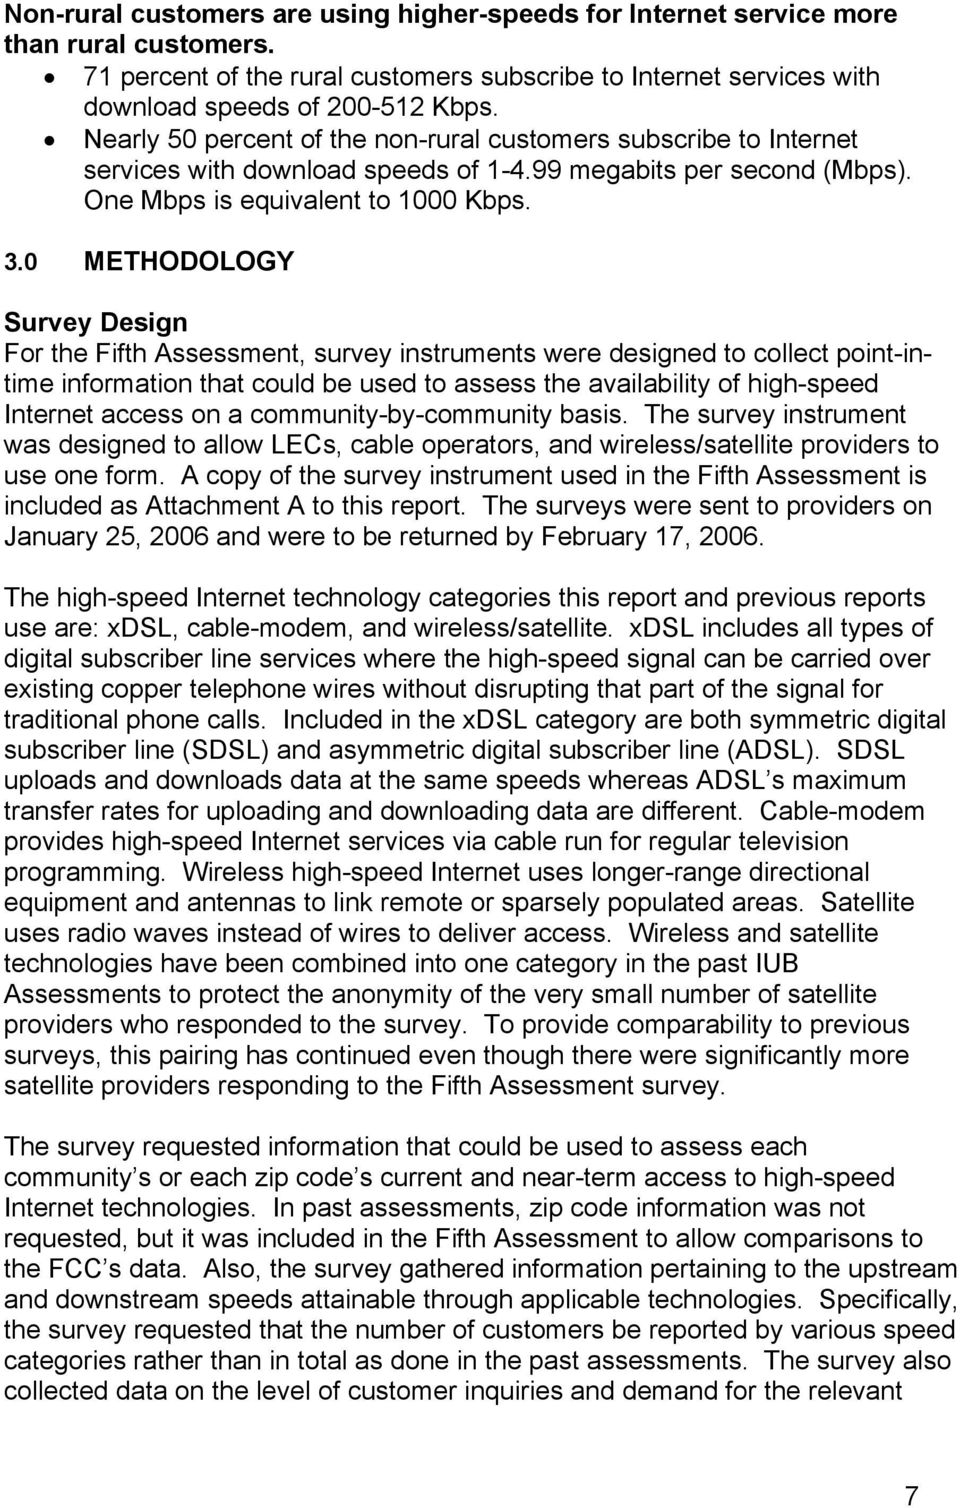 0 METHODOLOGY Survey Design For the Fifth Assessment, survey instruments were designed to collect point-intime information that could be used to assess the availability of high-speed Internet access